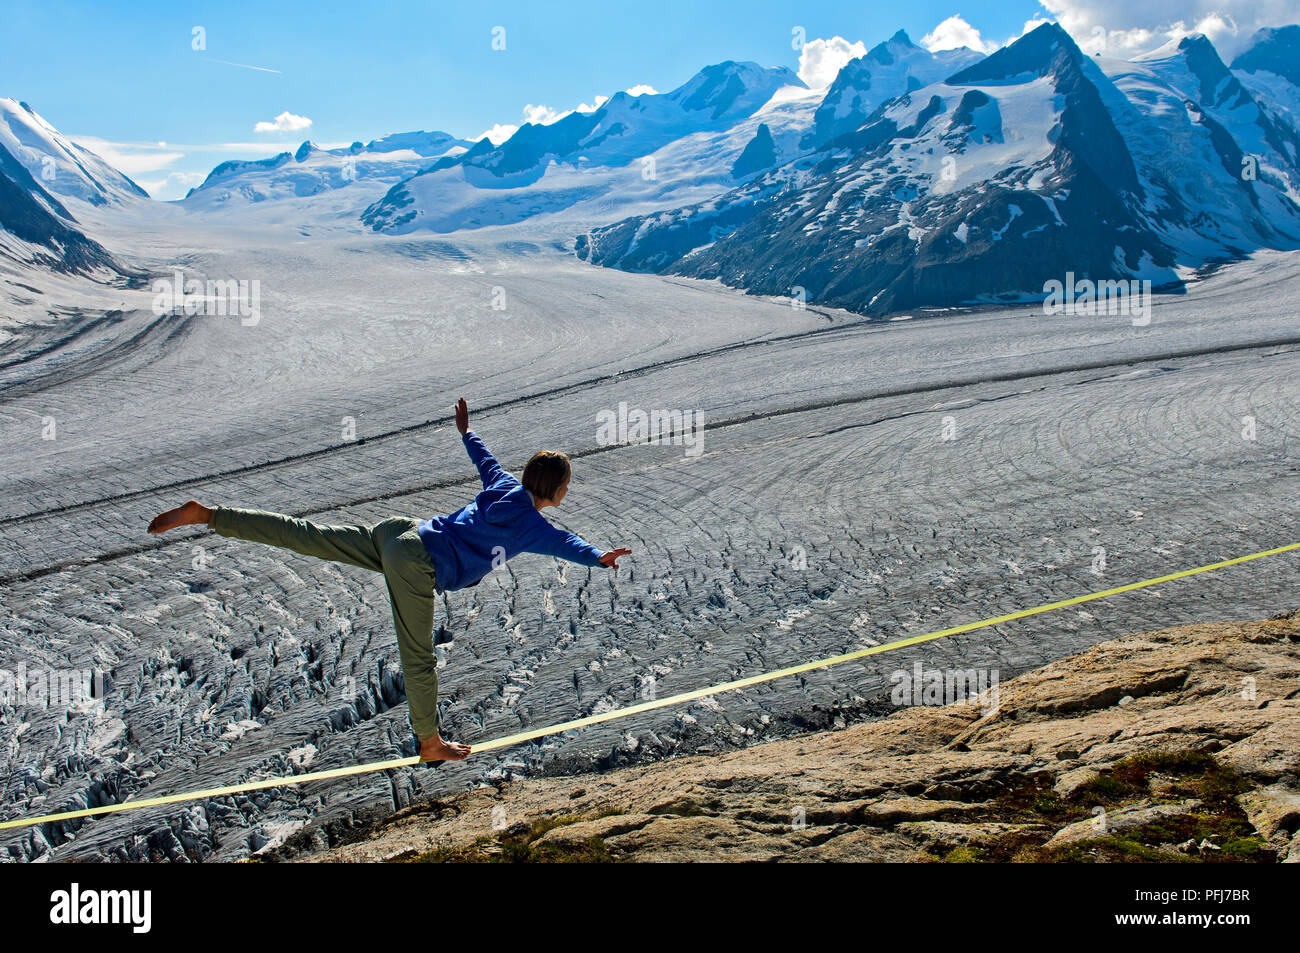 Young woman is balancing on the slackline at the Konkordia Hut over the glacier ice at Konkordiaplatz, Bernese Alps, Valais, Switzerland - Stock Image